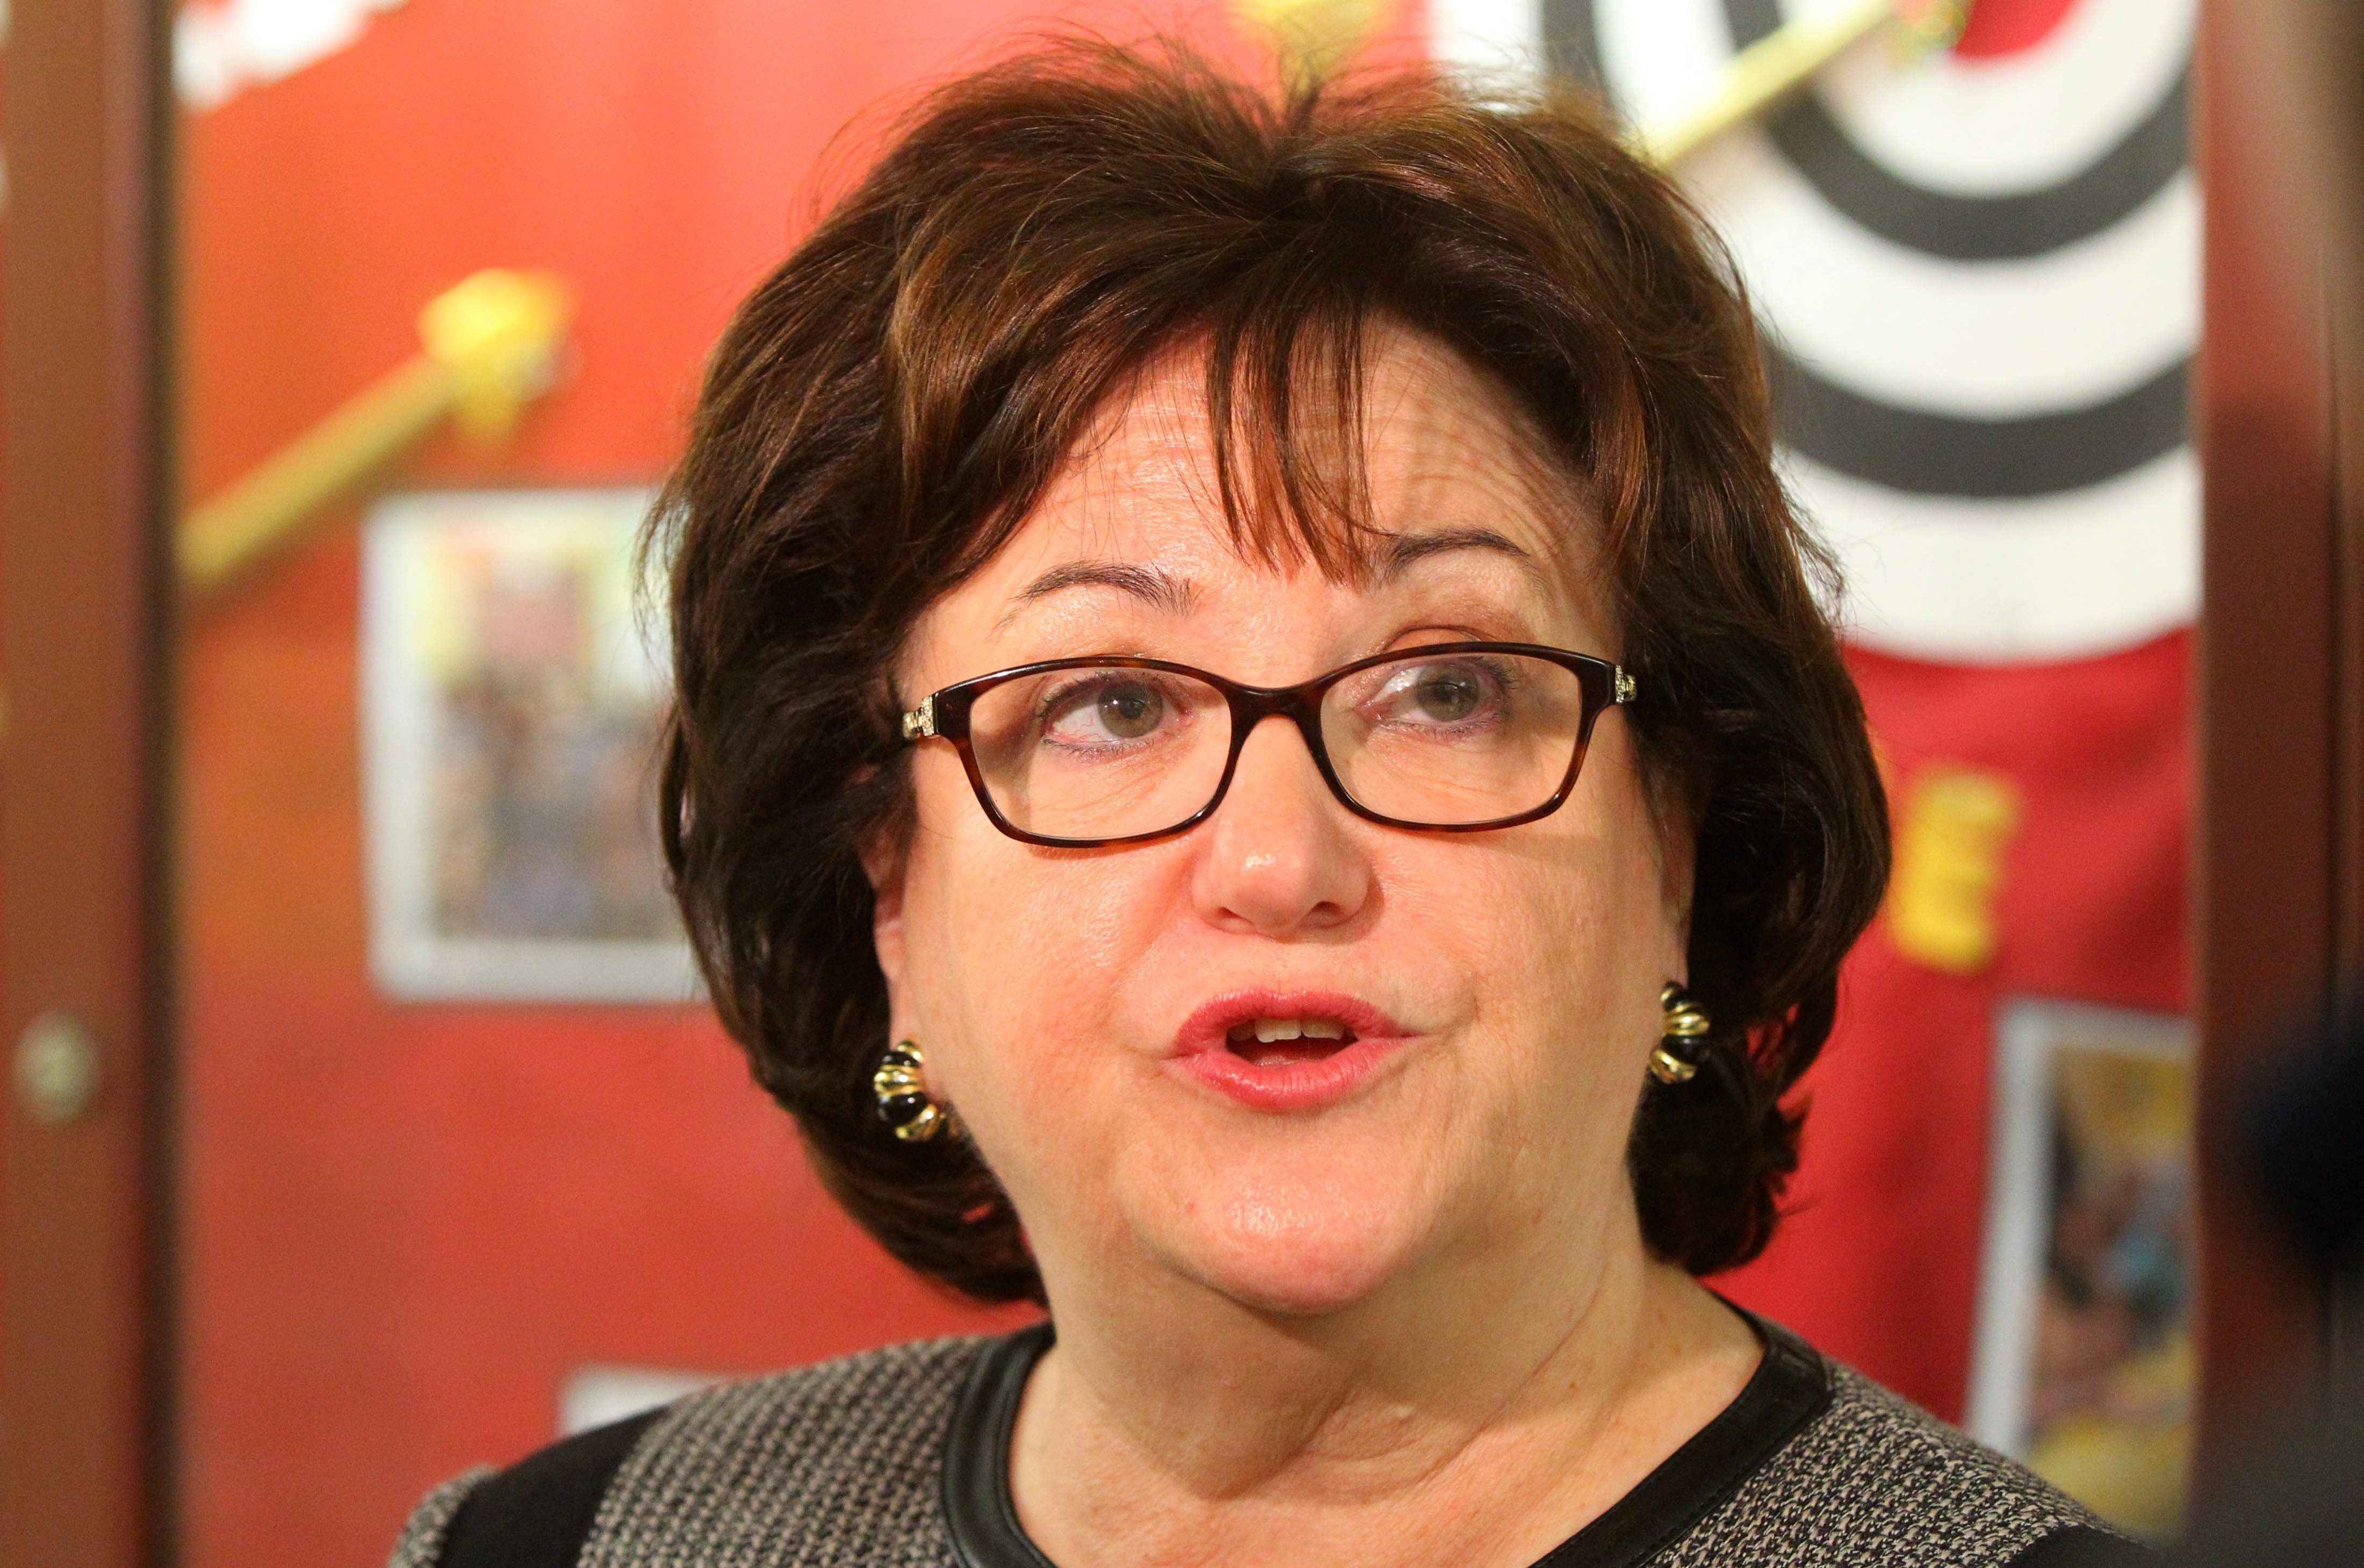 State Education Commissioner MaryEllen Elia  likes County Executive Mark Poloncarz's push for district mergers and consolidations, but notes the public has to buy in. (Mark Mulville/Buffalo News)